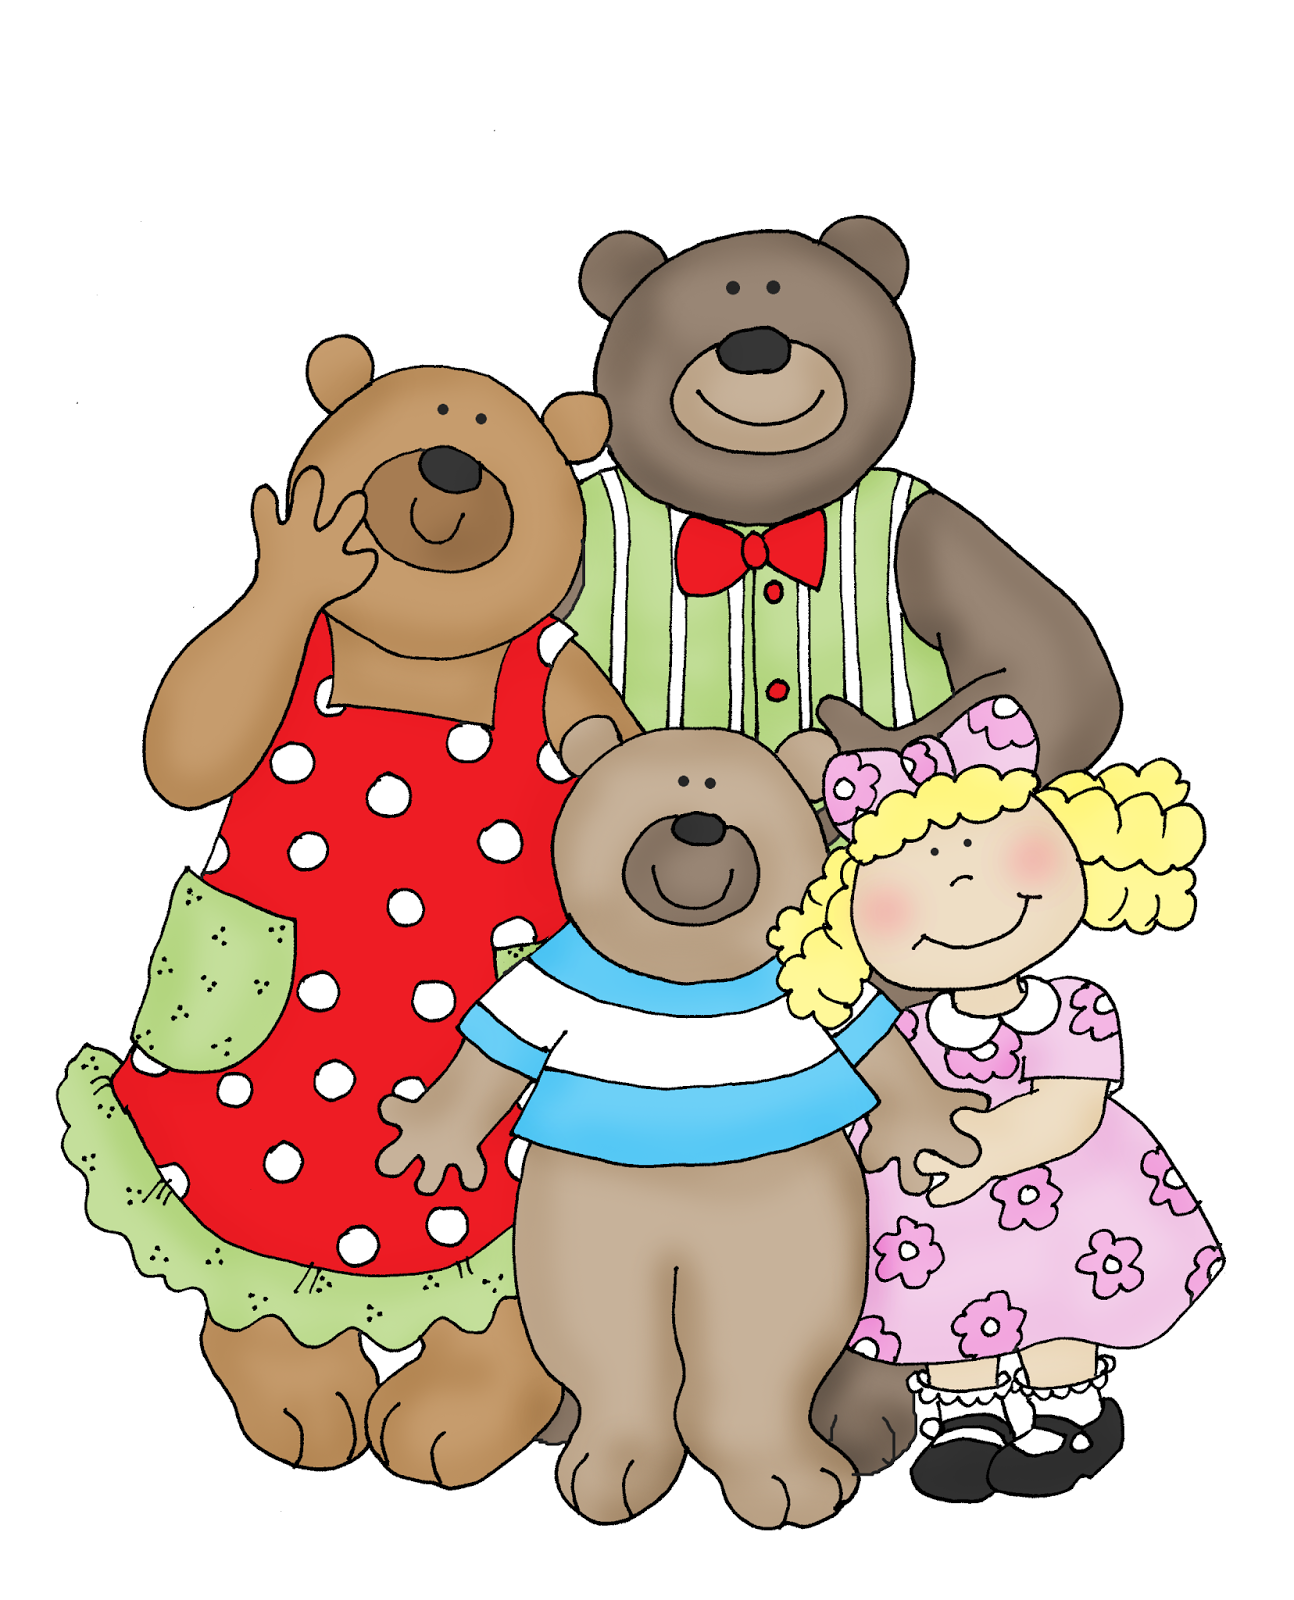 goldilocks and the three bears house mouse in color for card rh pinterest com free clipart goldilocks and the three bears goldilocks clipart free